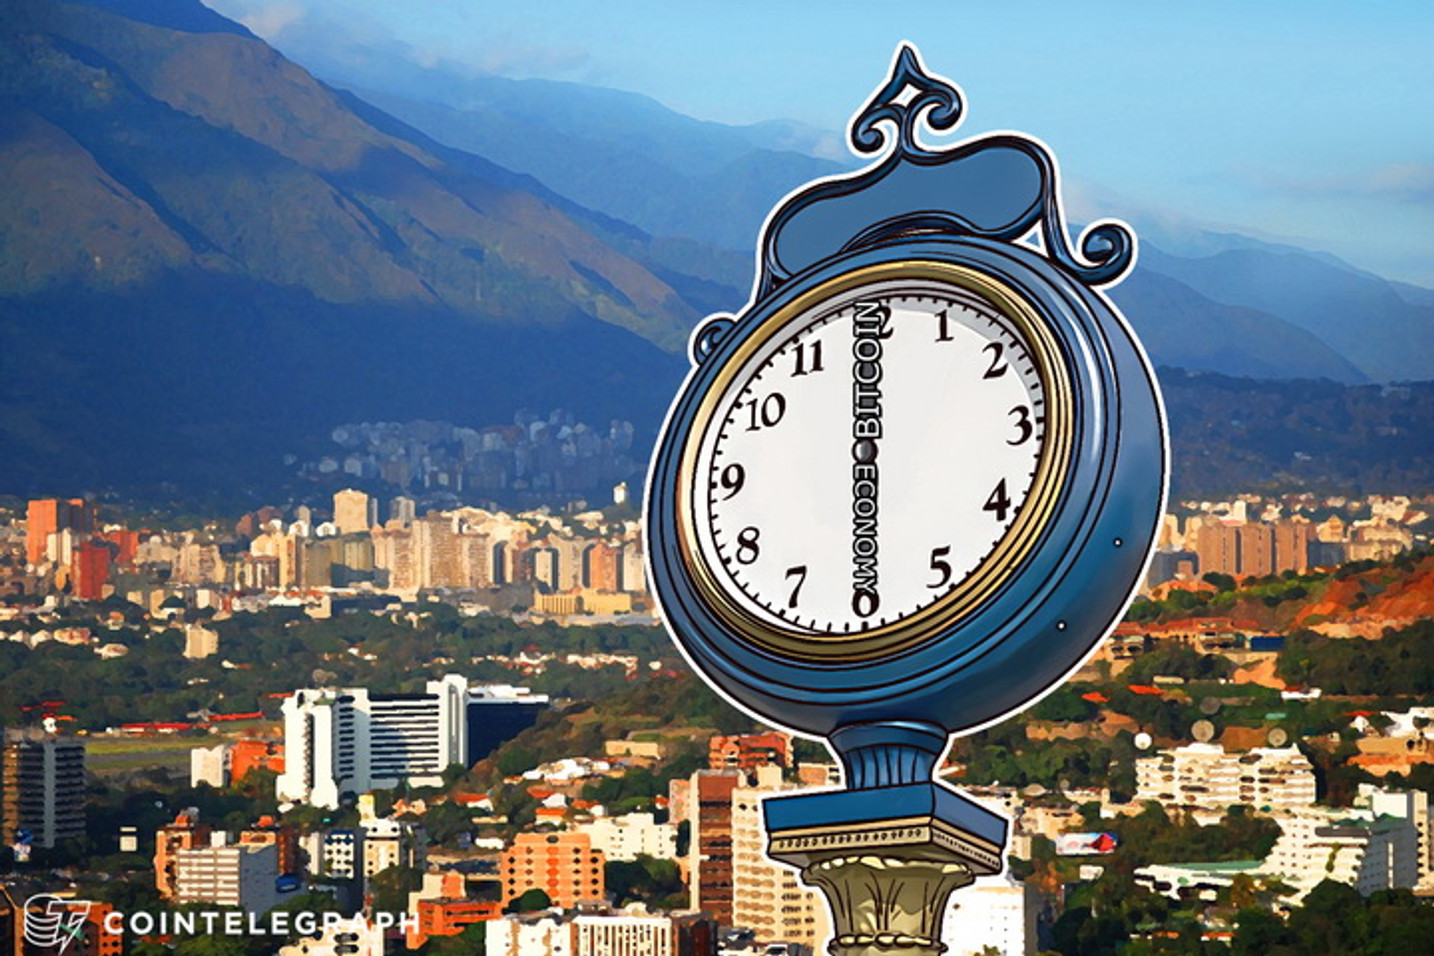 Bitcoin Trading in Venezuela Shoots Up as Economy Worsens